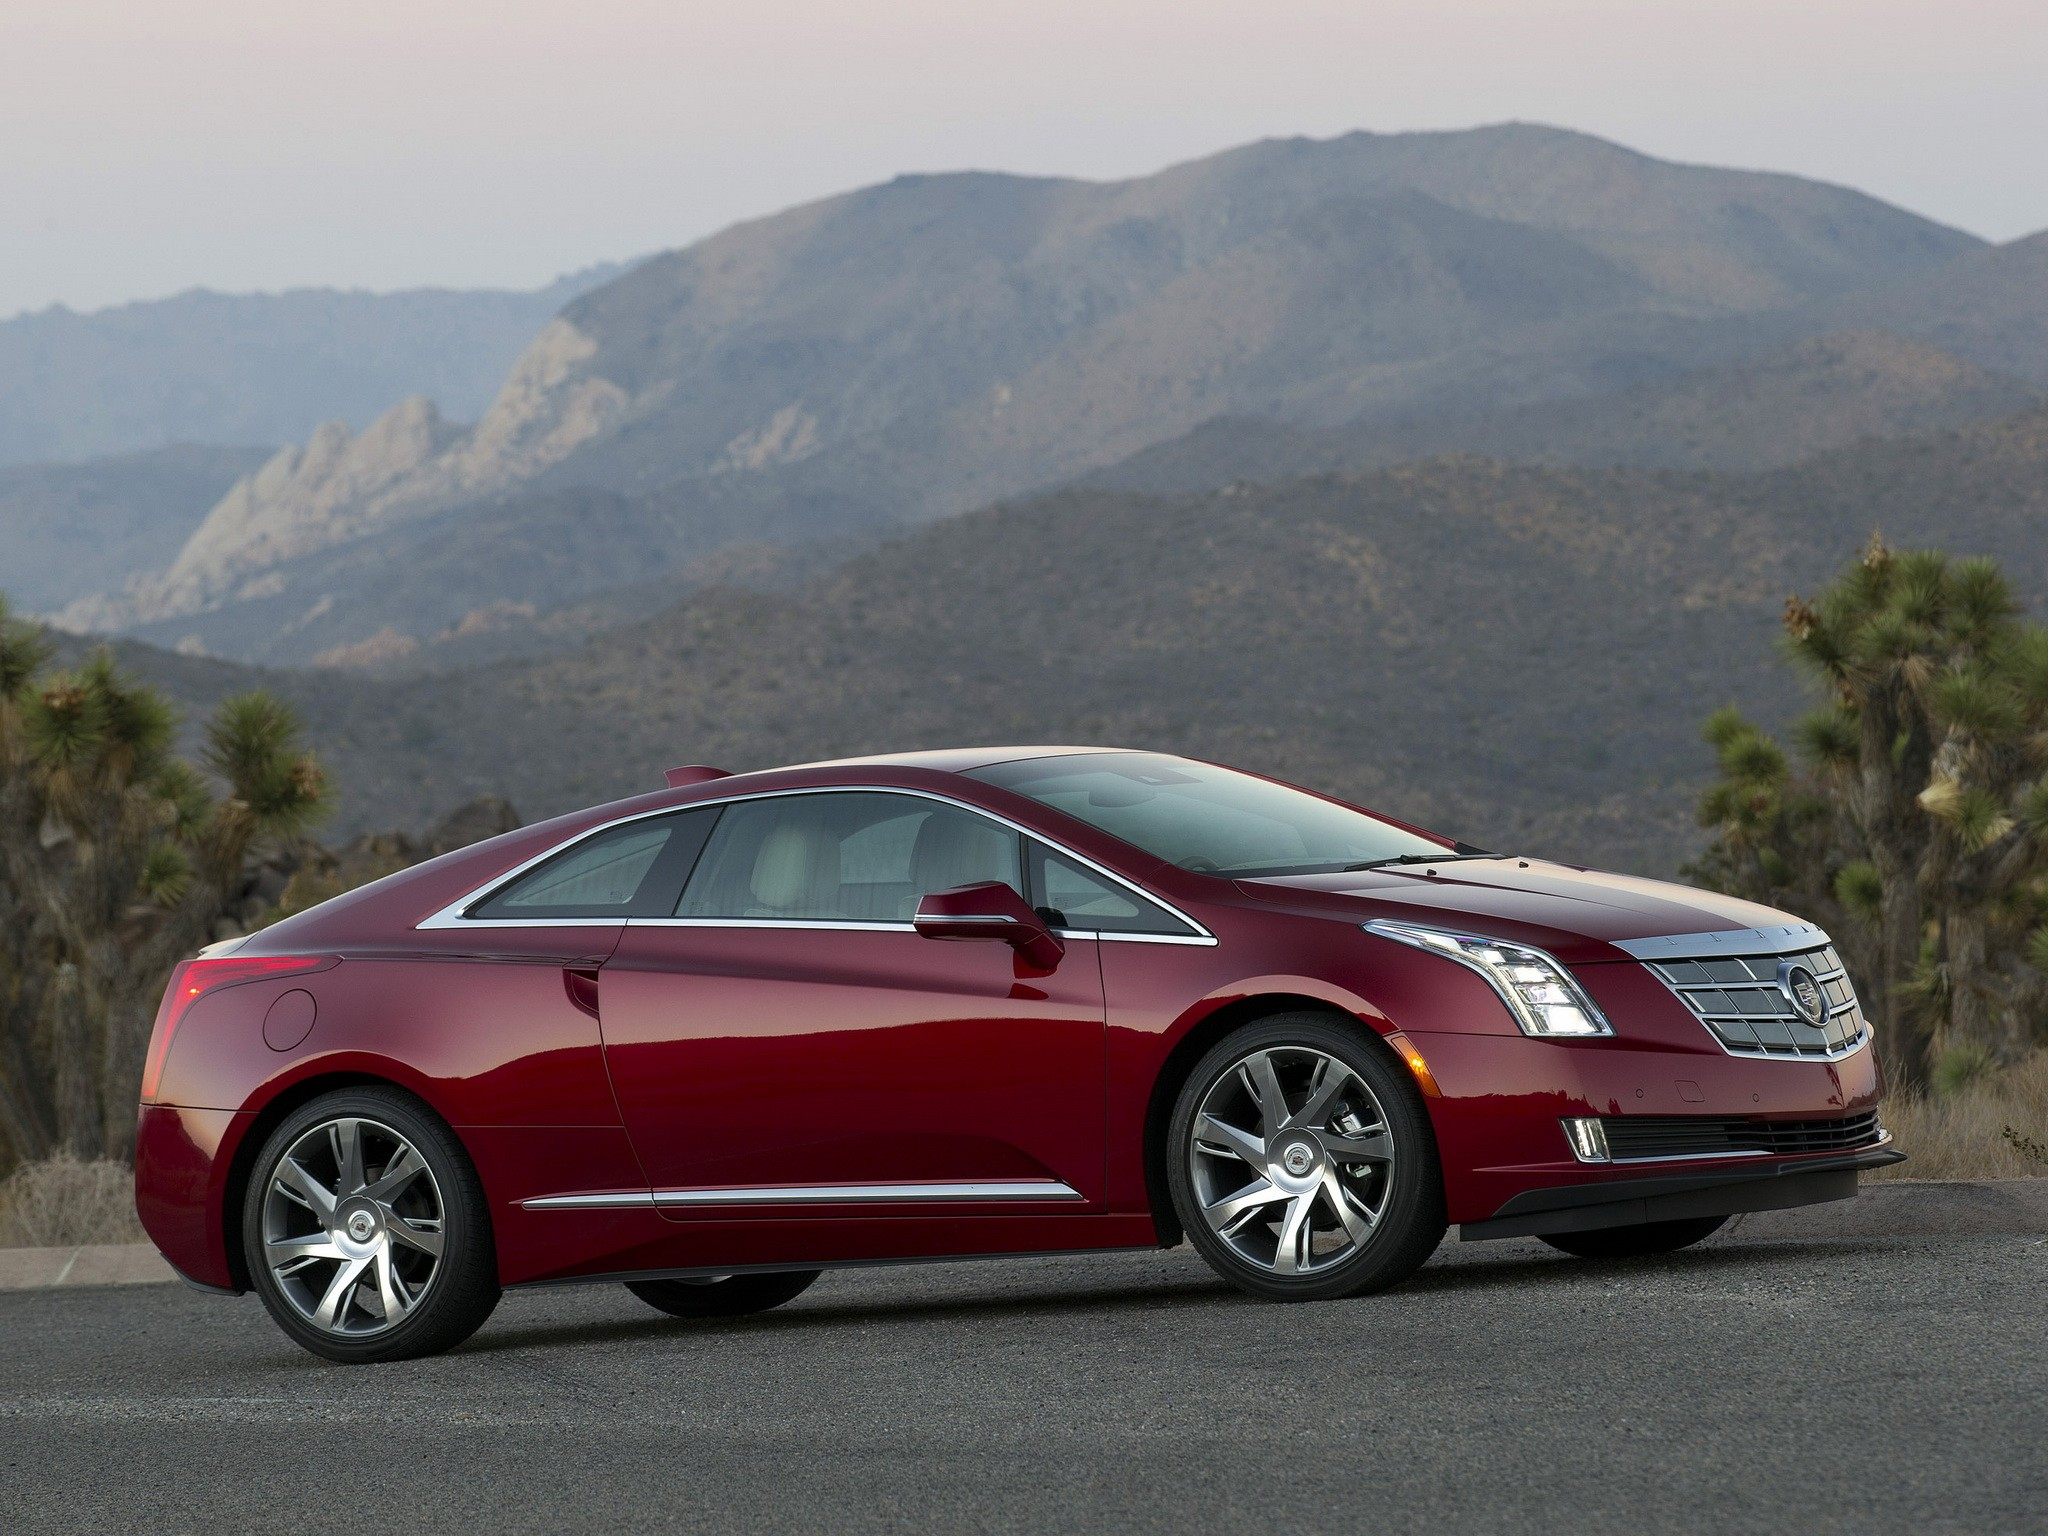 2020 Cadillac ELR S Specs and Review